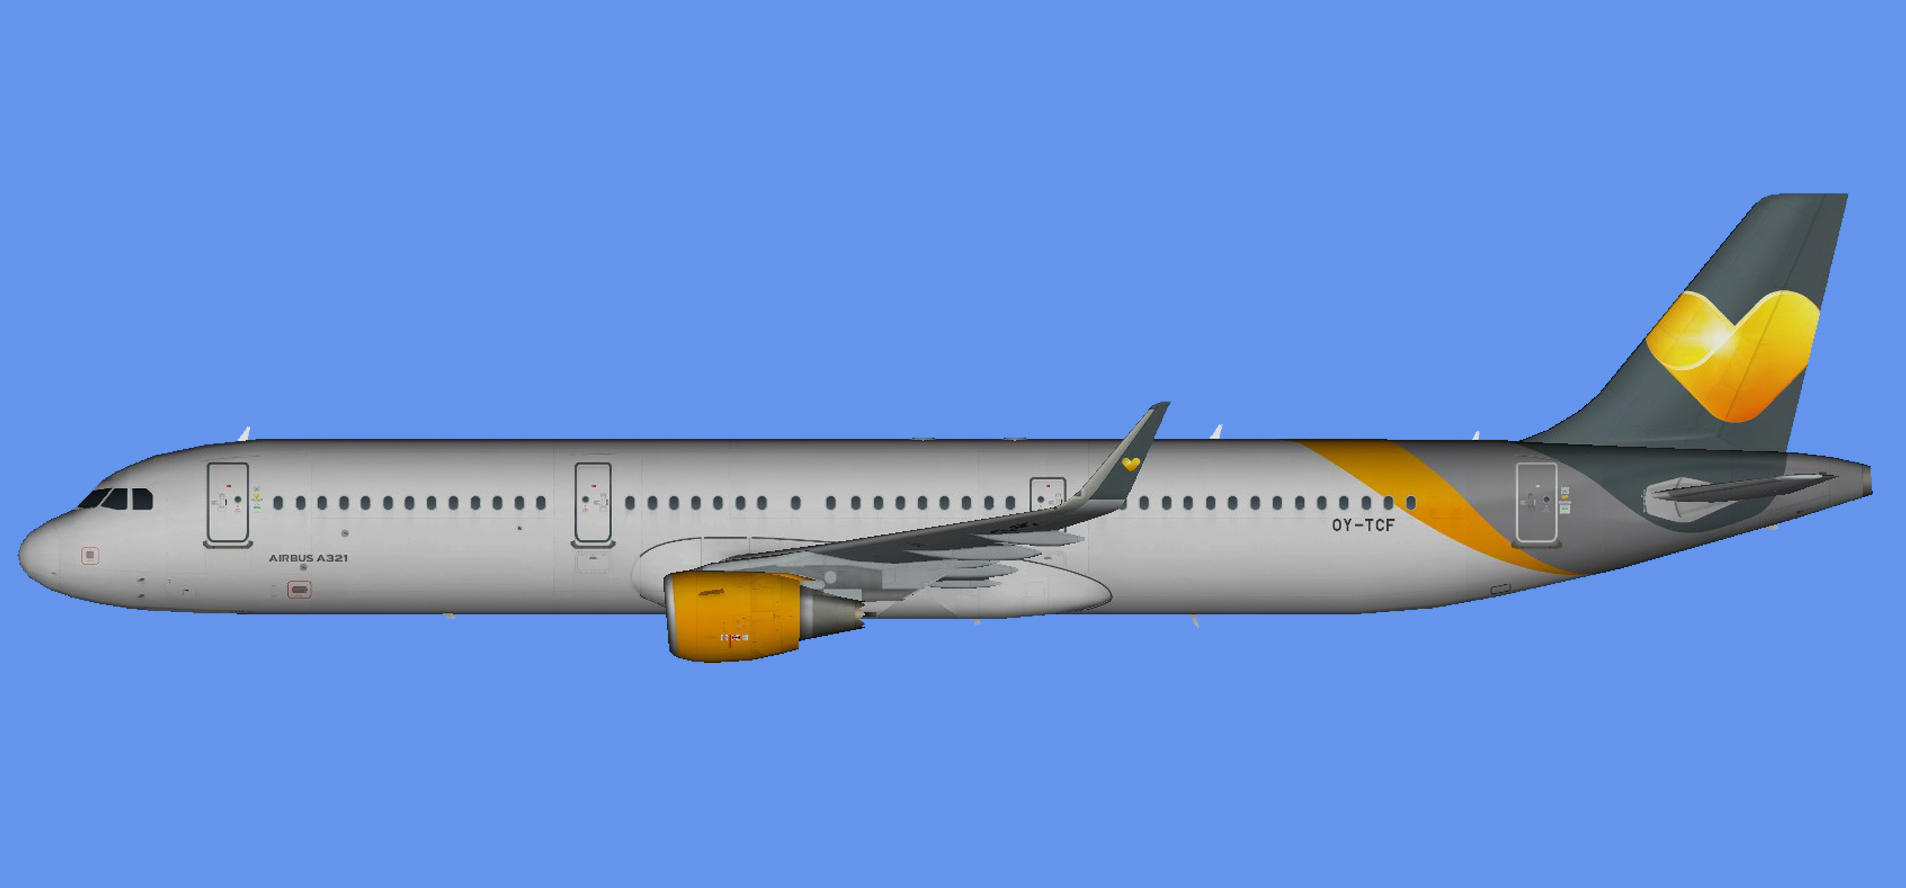 Sunclass Airlines Airbus A321 (sharklets)